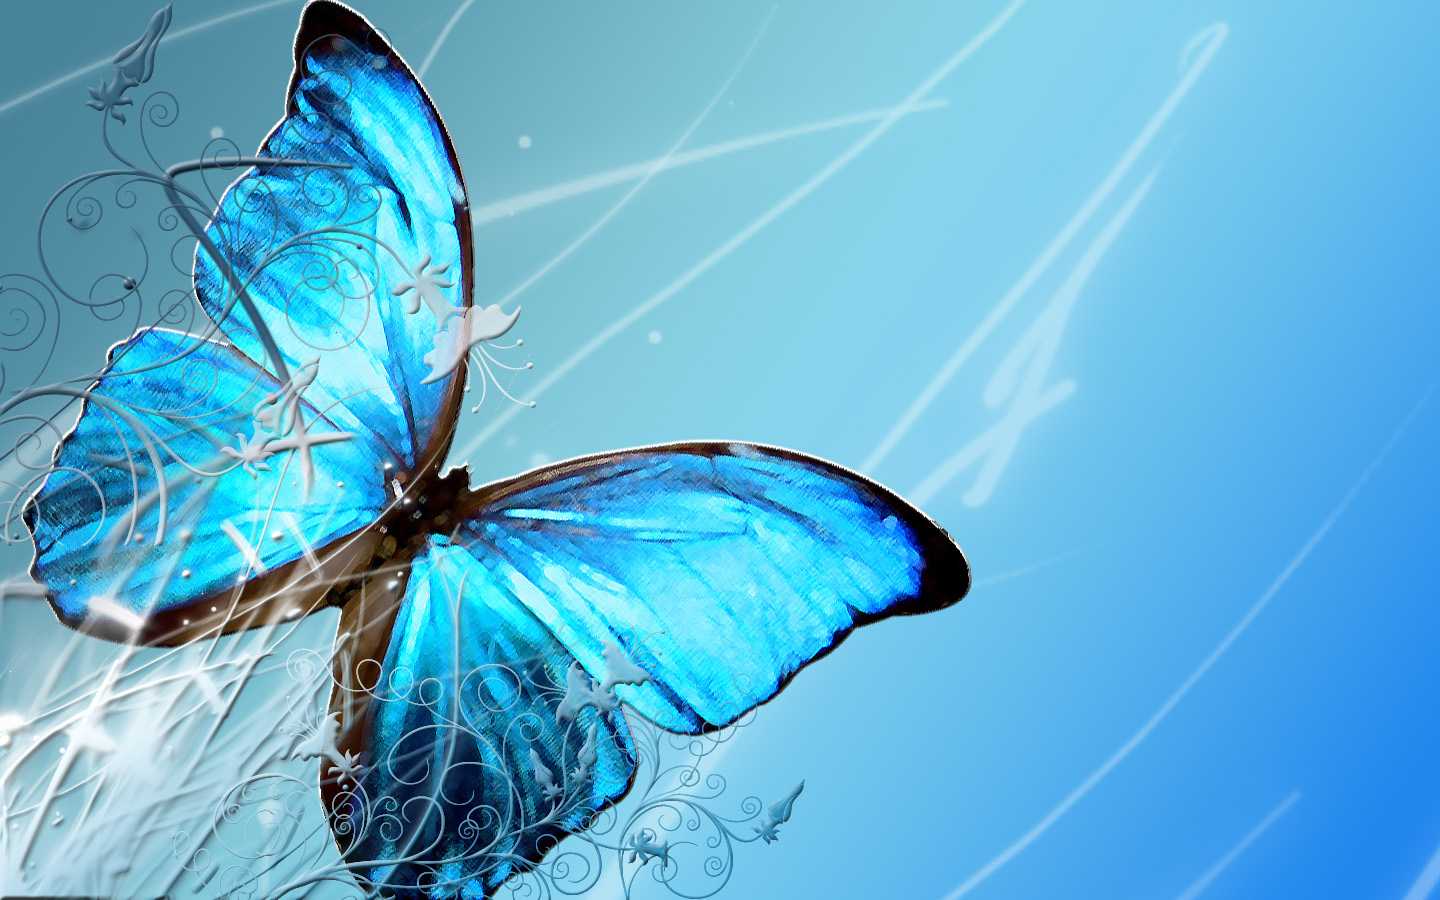 Amazing Islamic Wallpapers With Quotes Butterfly Wallpaper Blue Butterfly Wallpaper 7504